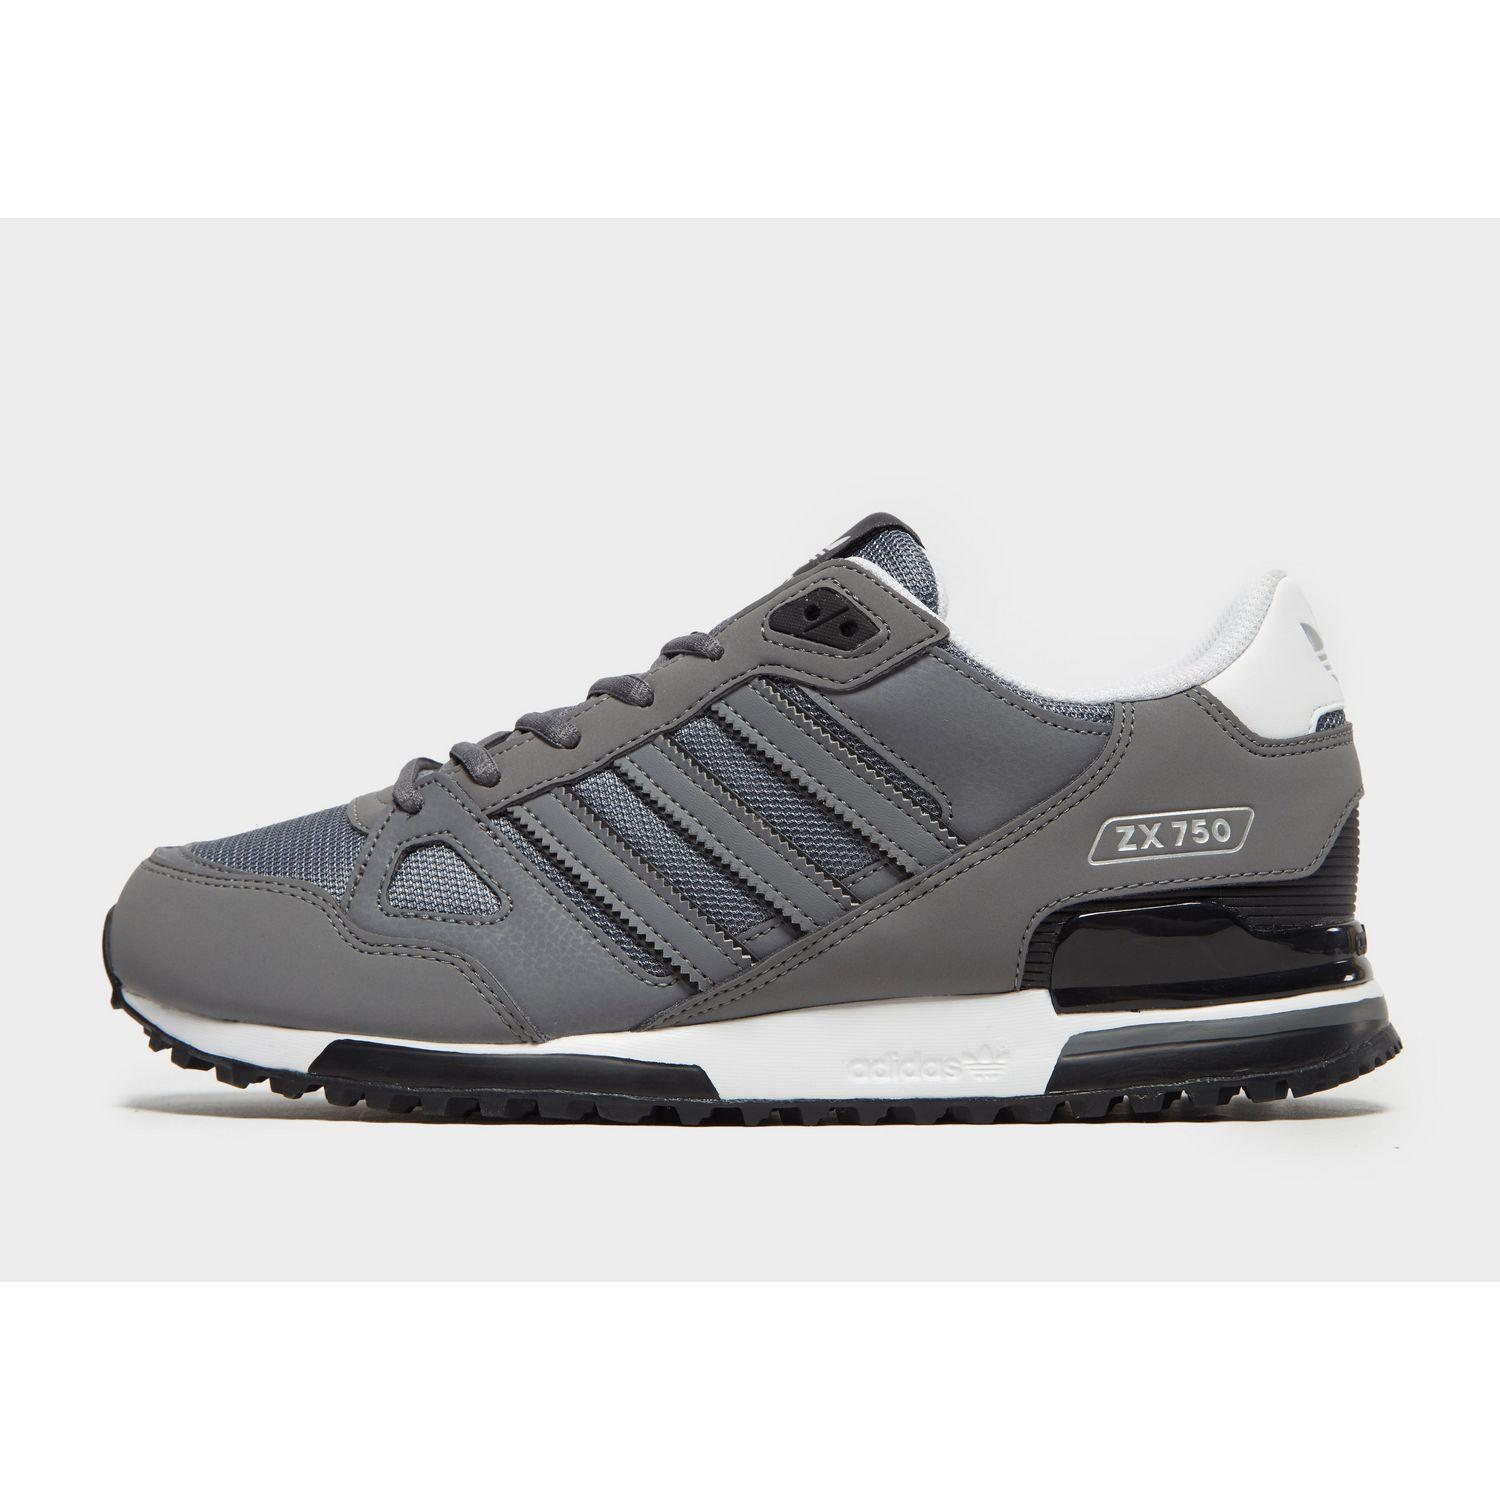 3f13a4df3 adidas Originals Zx 750 in Gray for Men - Lyst